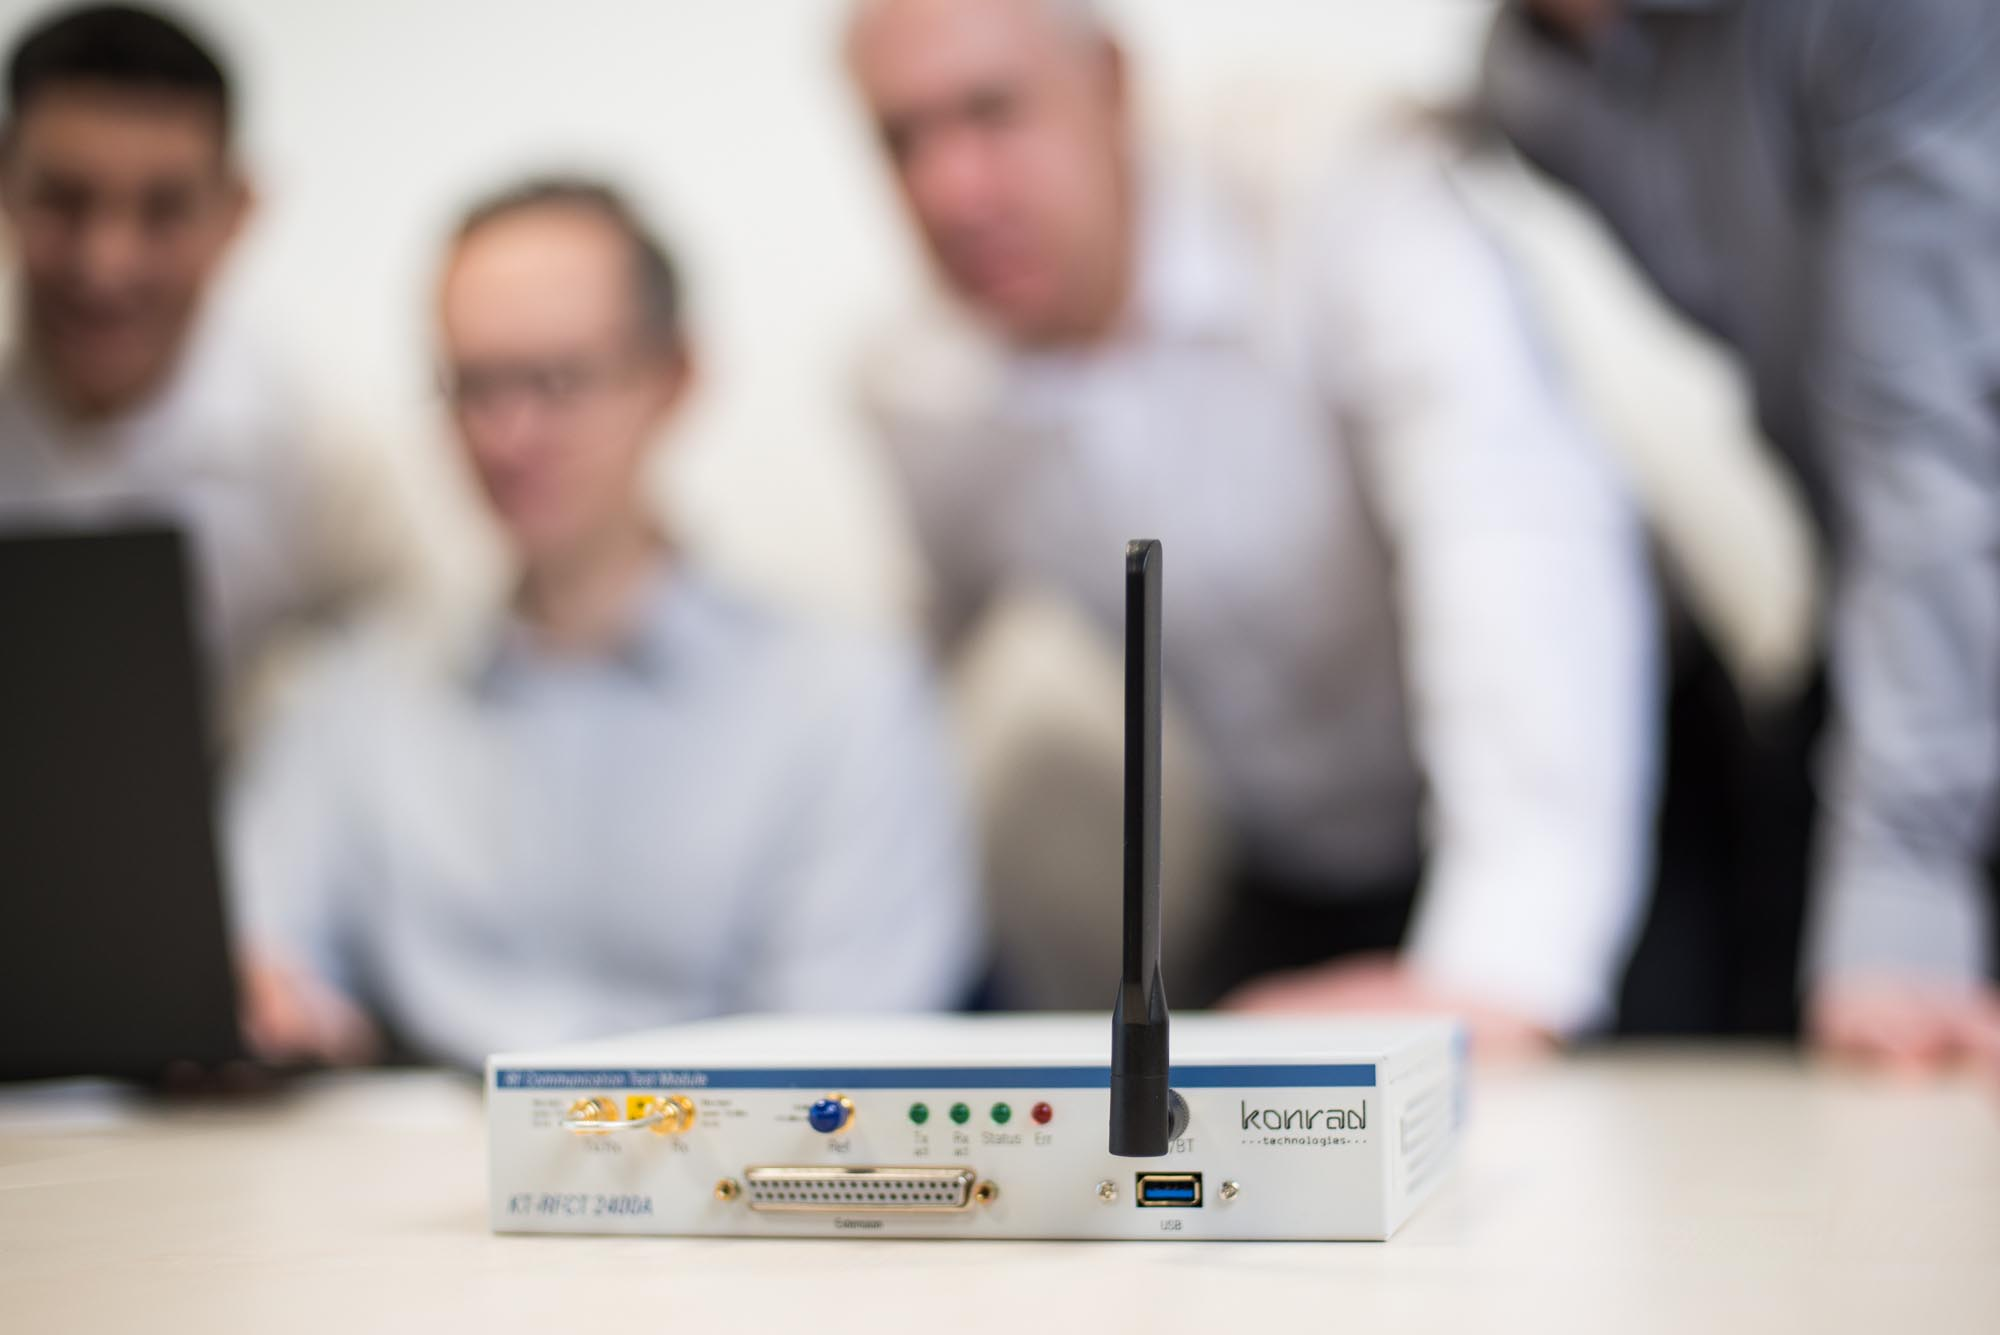 Functional RF Parametric & Throughput Performance Test of IoT Wireless Devices